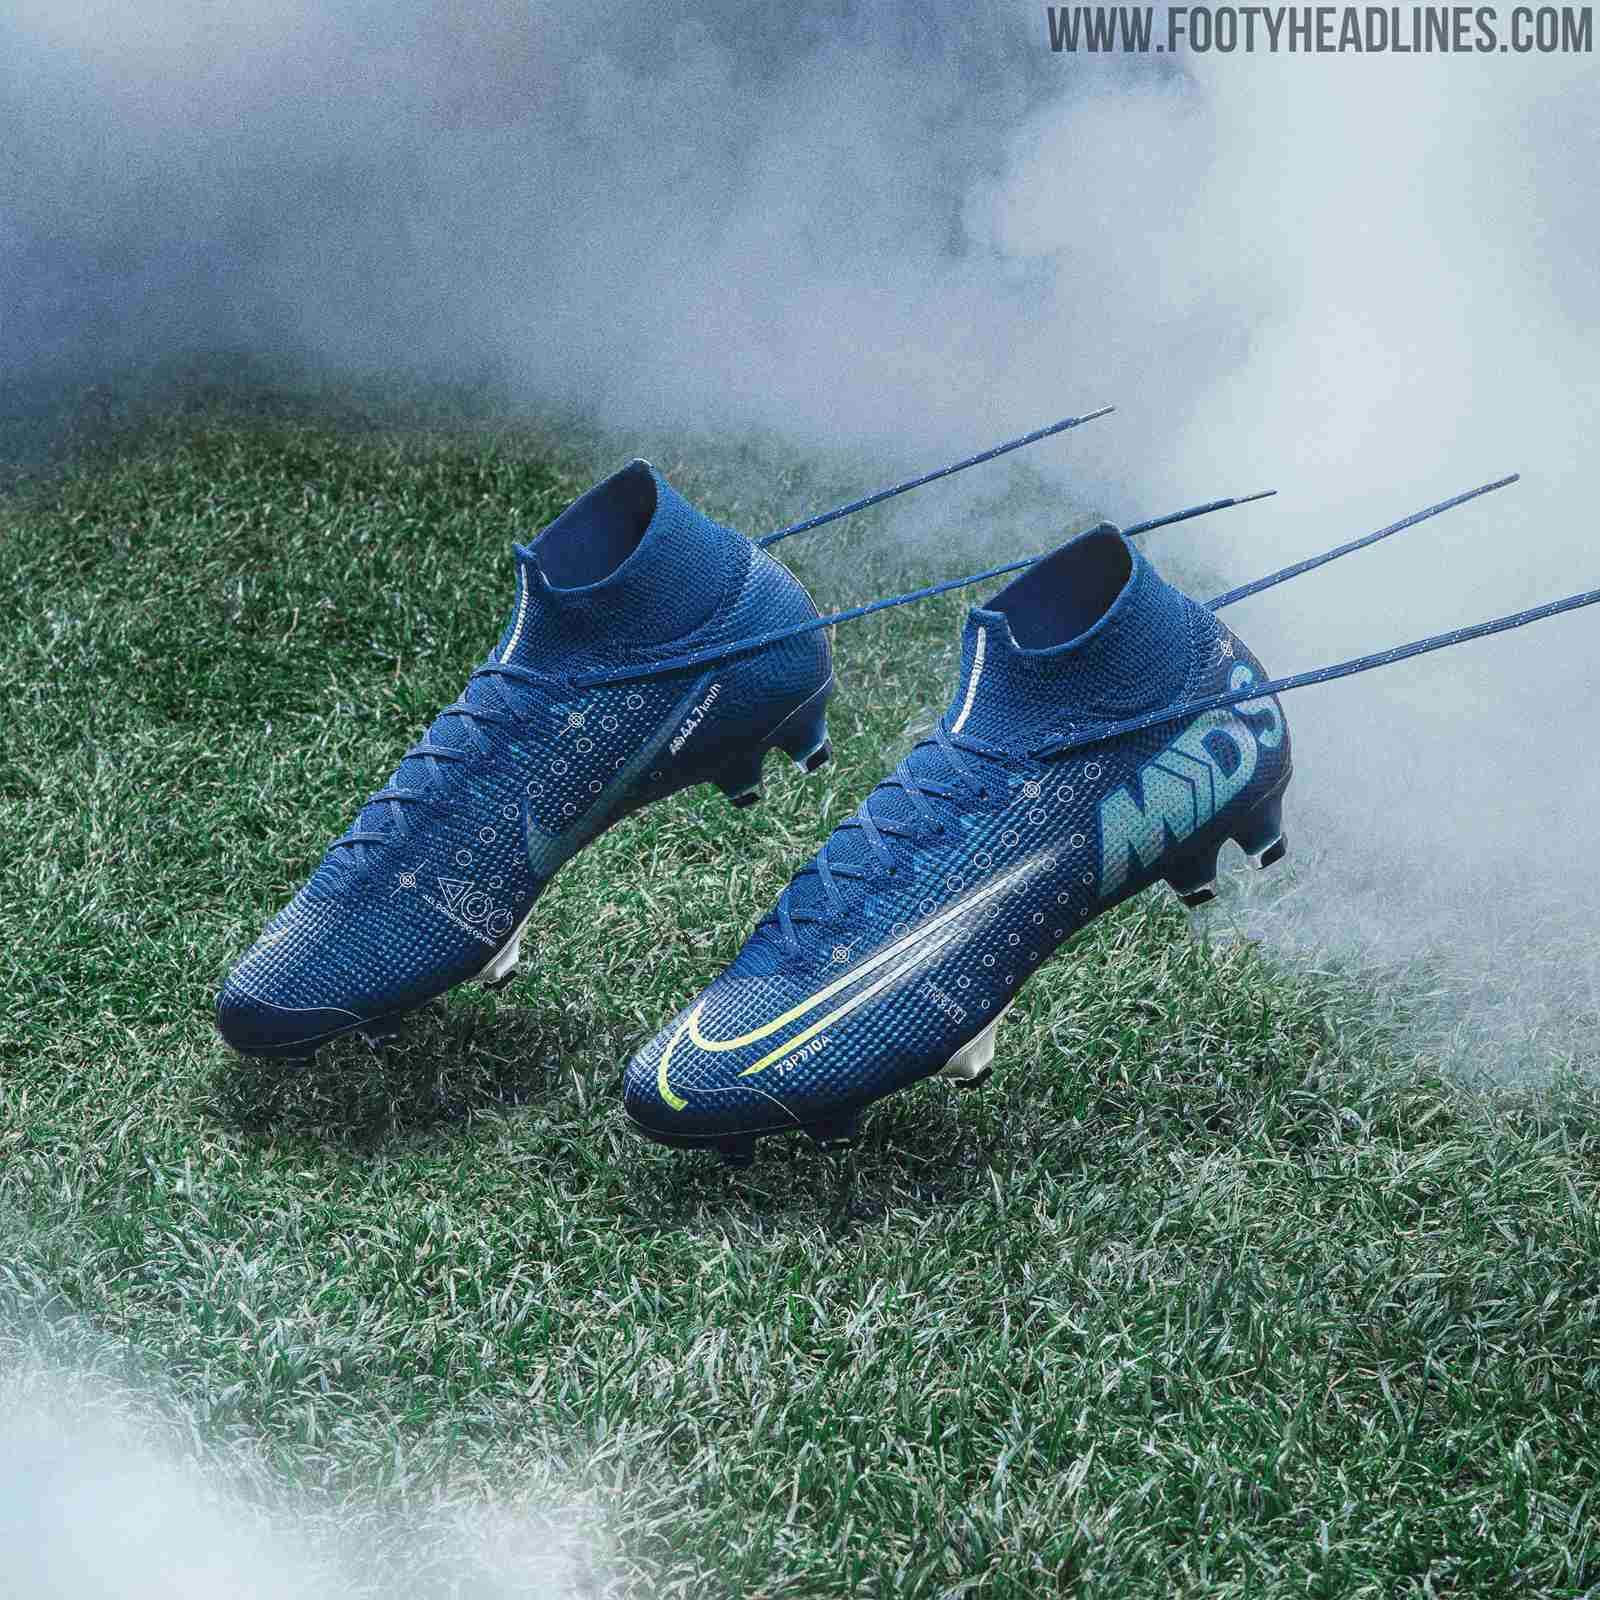 pagar tonto Colonial  Nike Mercurial 'Dream Speed' 2019-20 Boots Released - CR7 & Mbappe ...